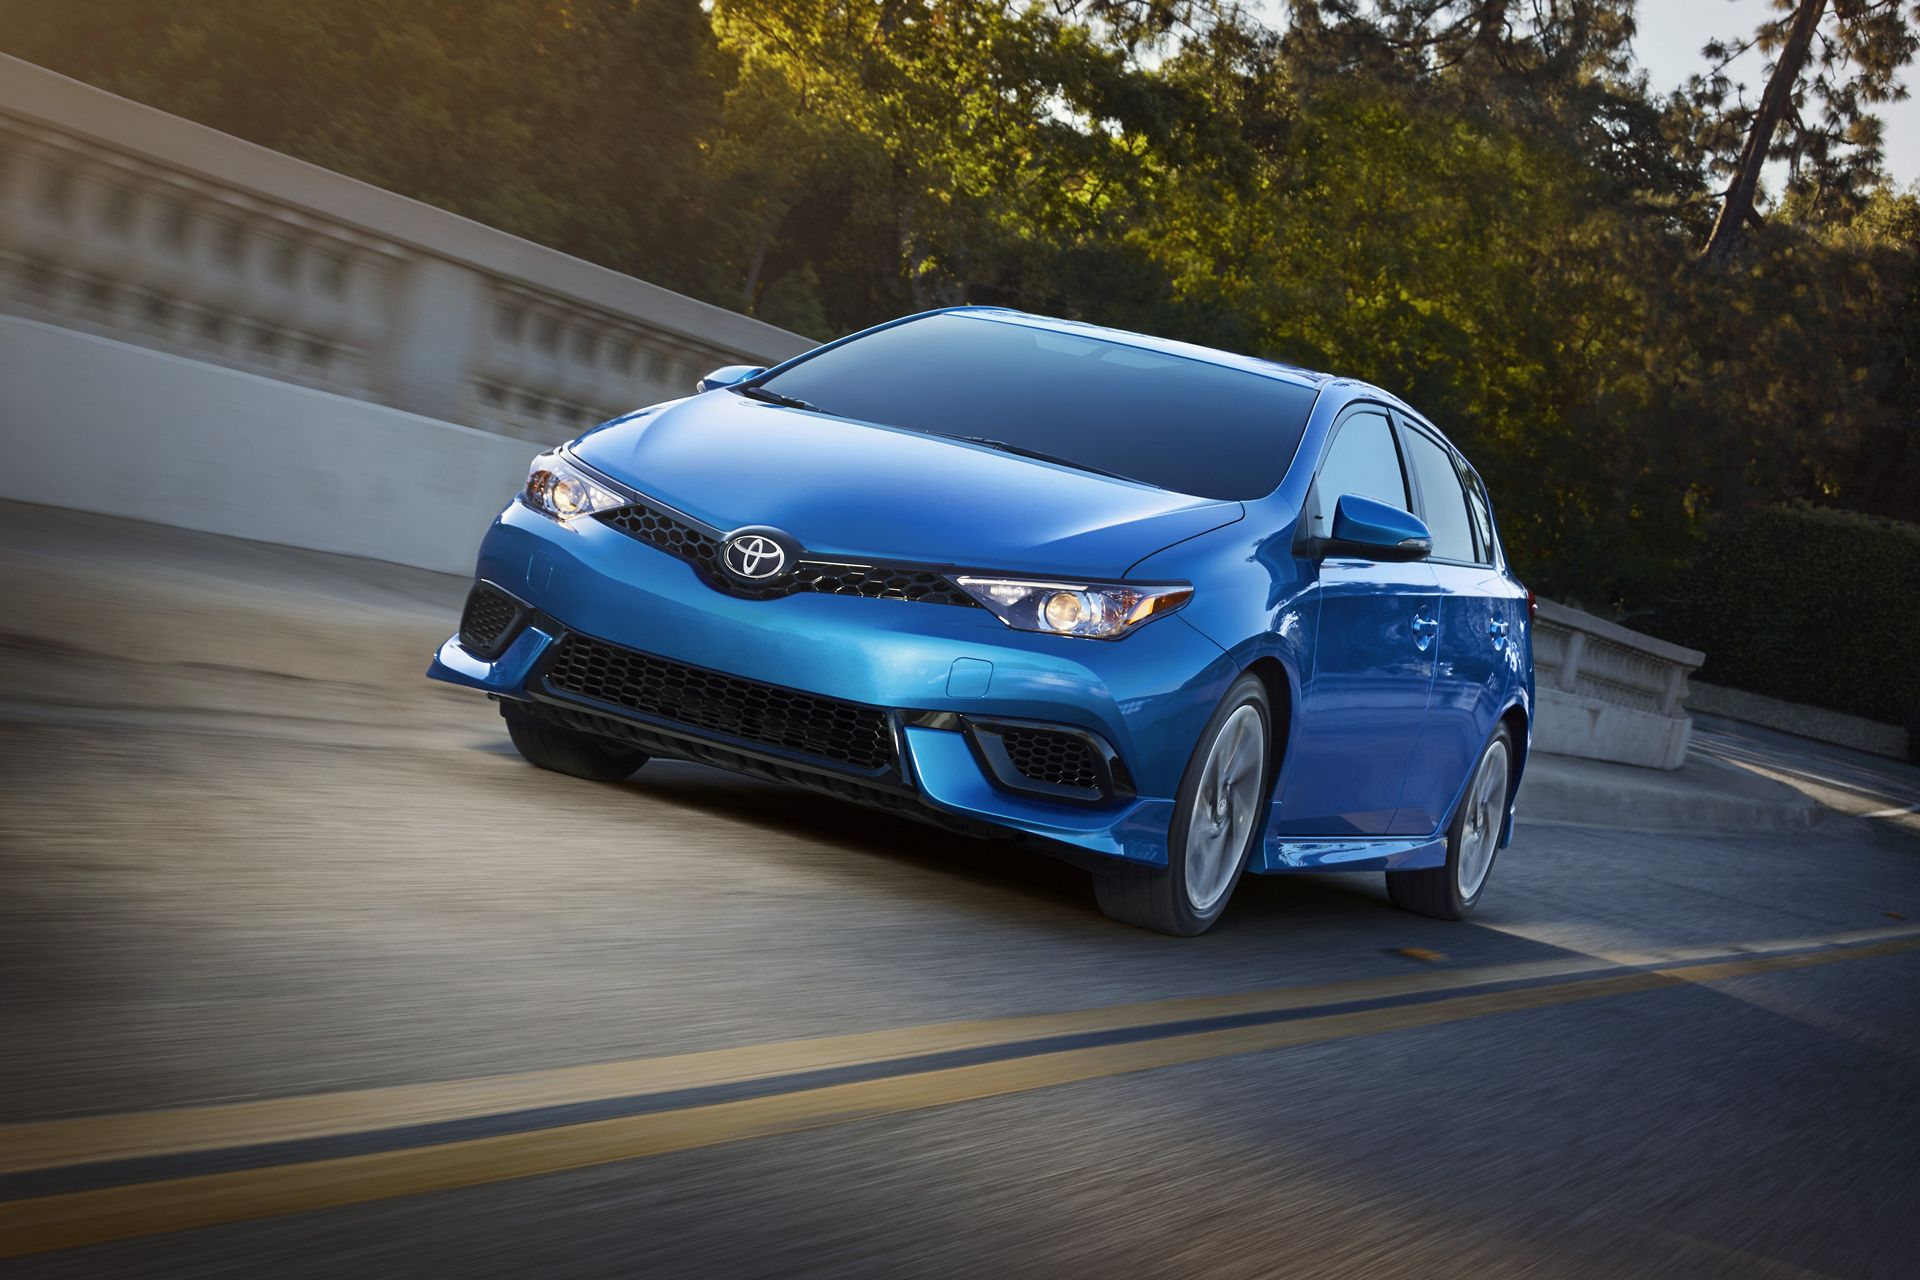 For Corolla buyers looking to hatch up some great adventures, the iM is the…